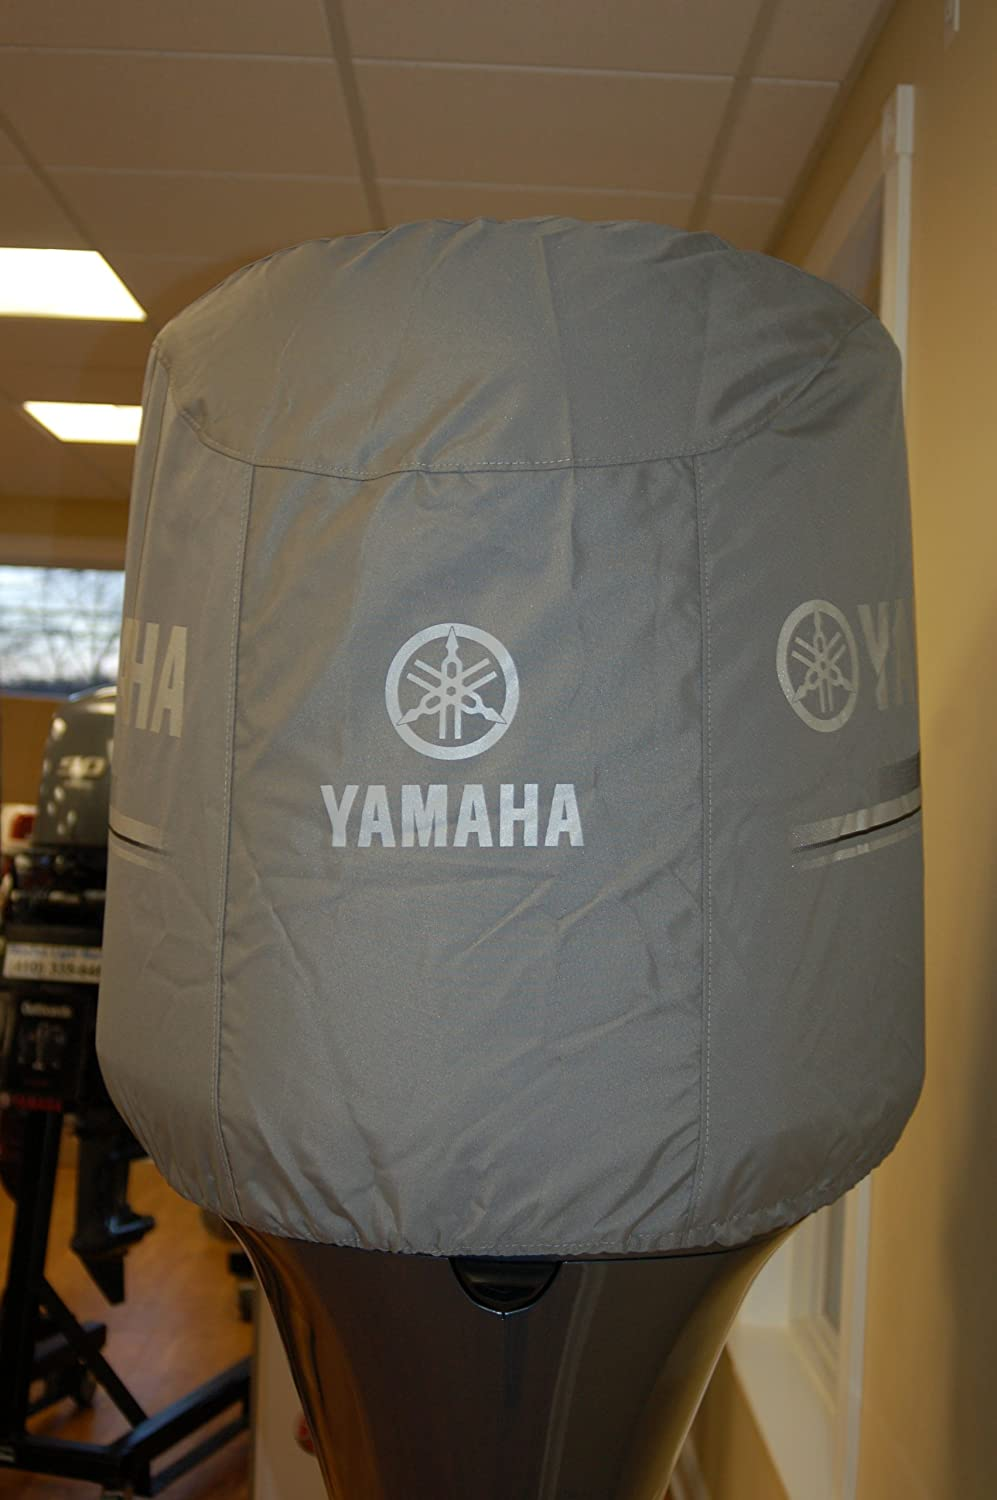 Amazon oem yamaha heavy duty 42l offshore outboard motor amazon oem yamaha heavy duty 42l offshore outboard motor cover mar mtrcv f4 2l car covers sports outdoors sciox Image collections